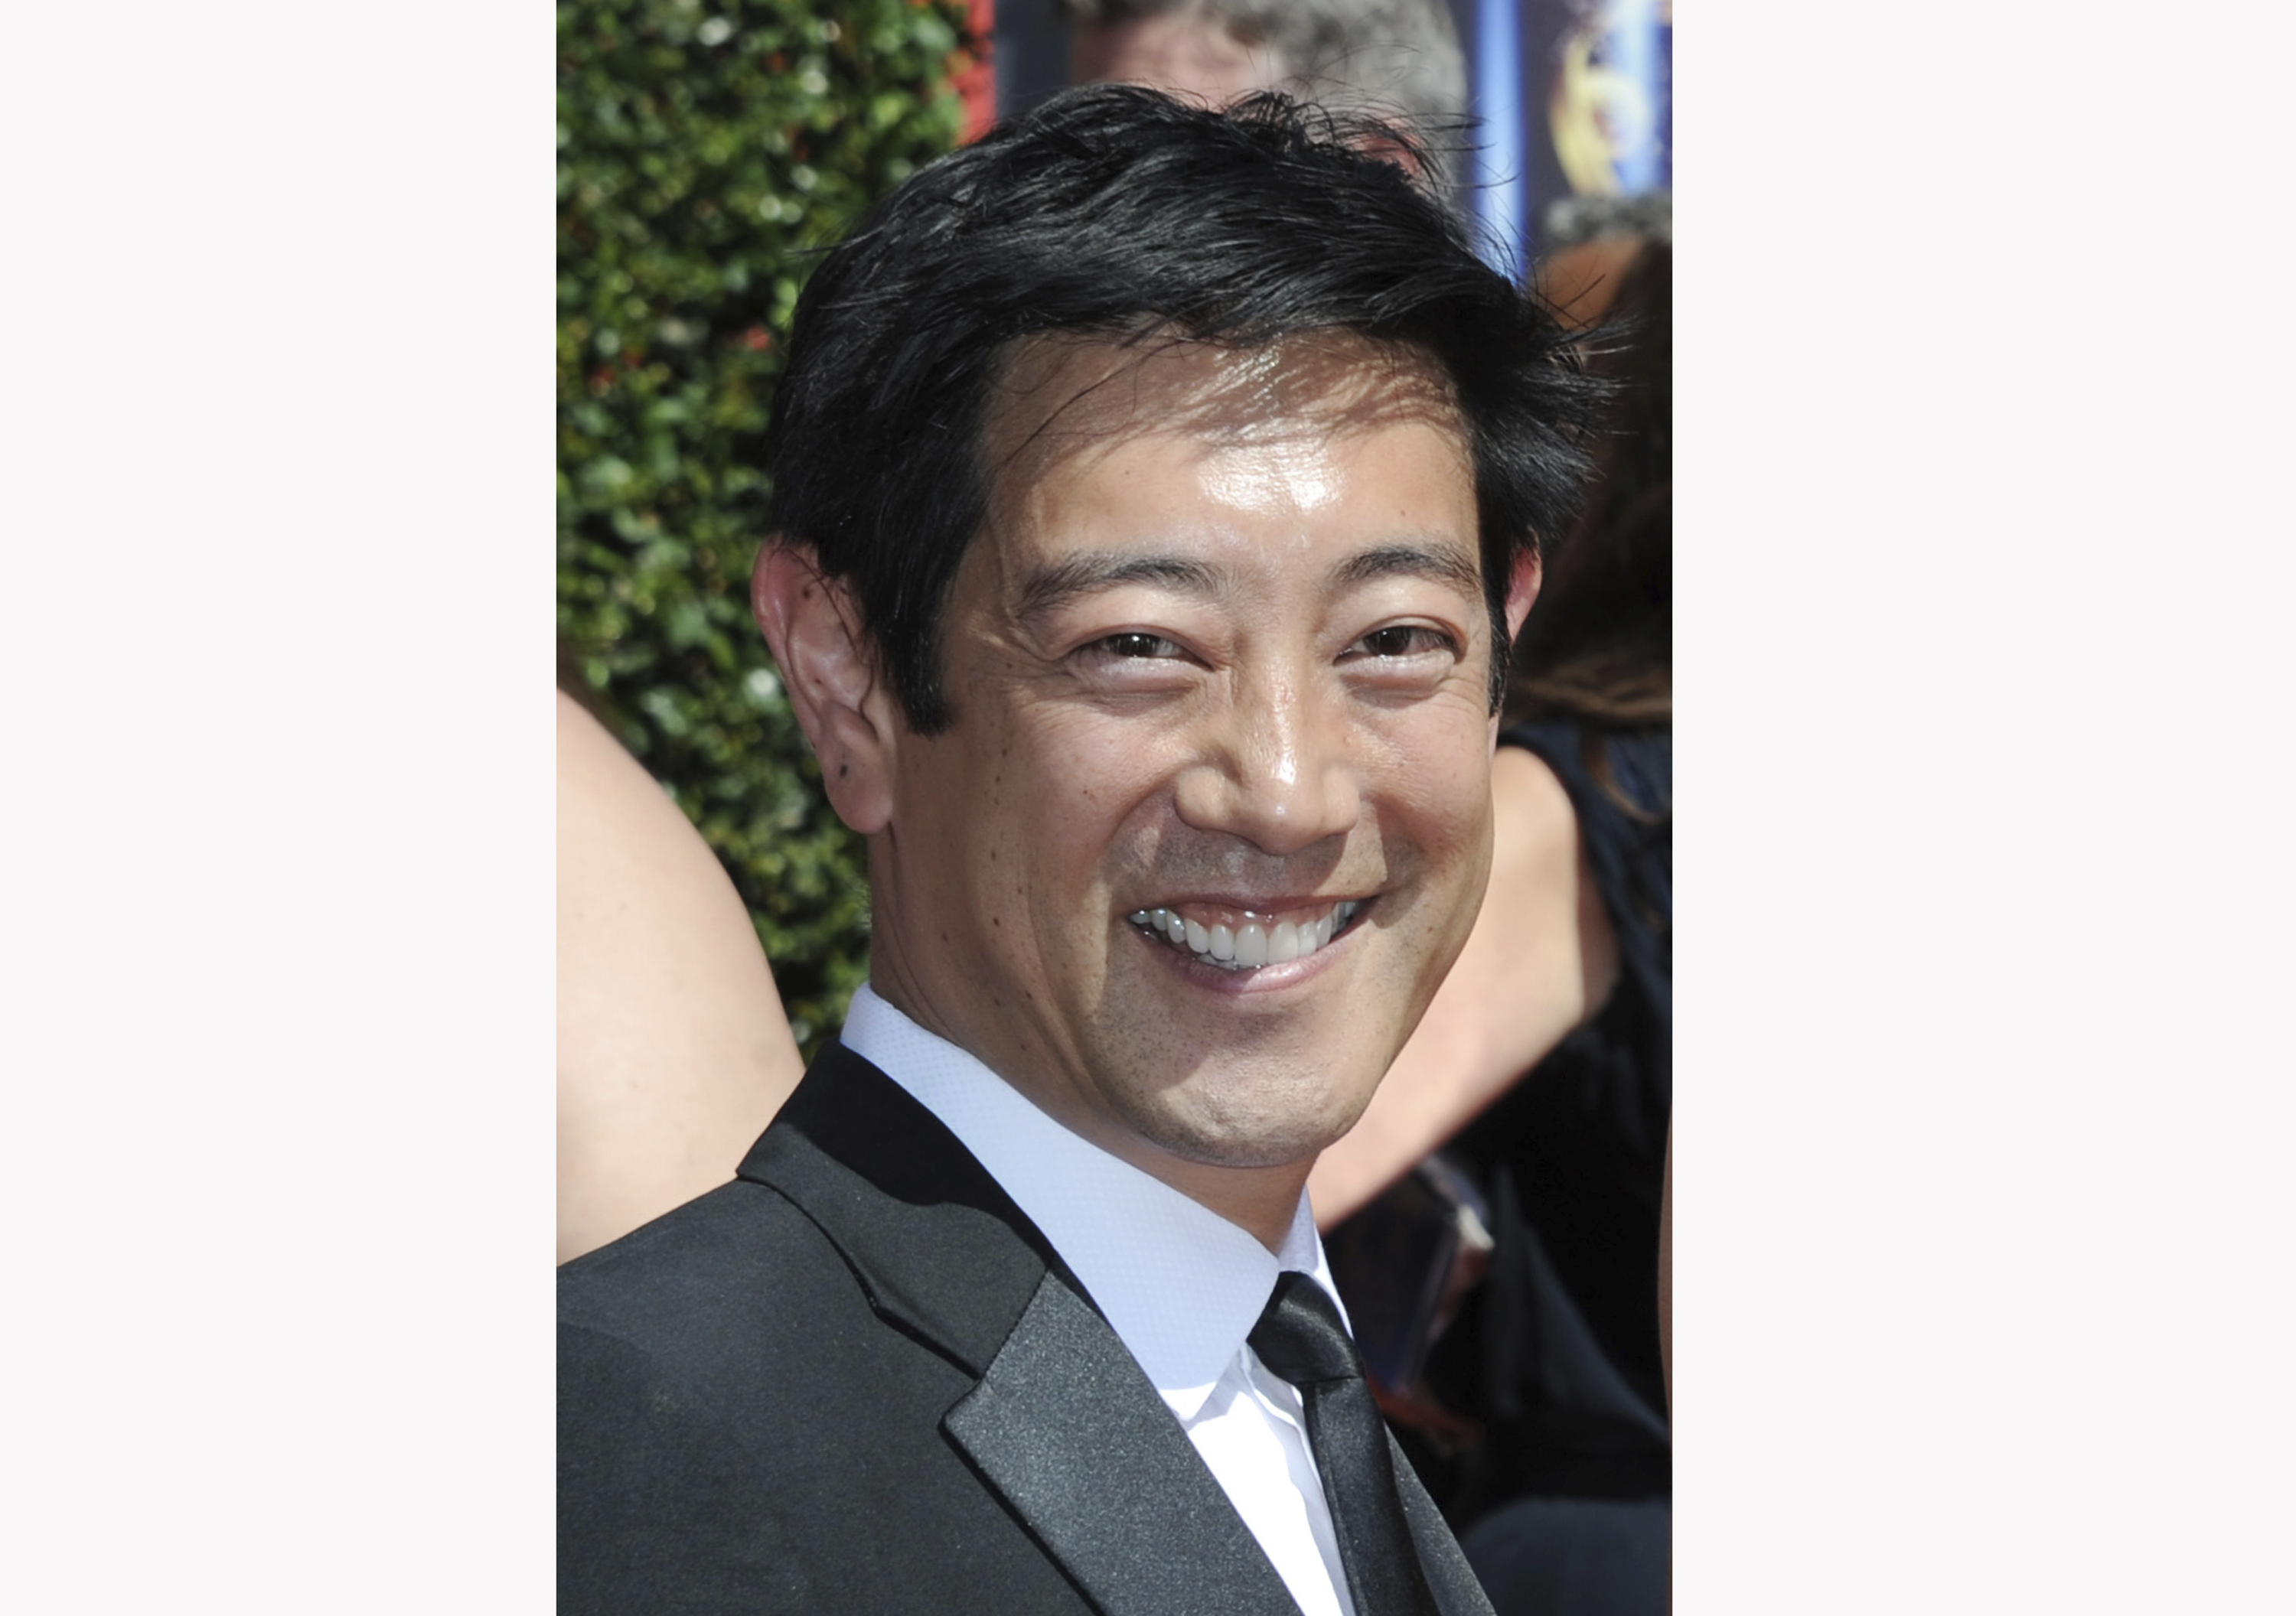 Grant Imahara Mythbusters Host And Electronics Extraordinaire Dies At 49